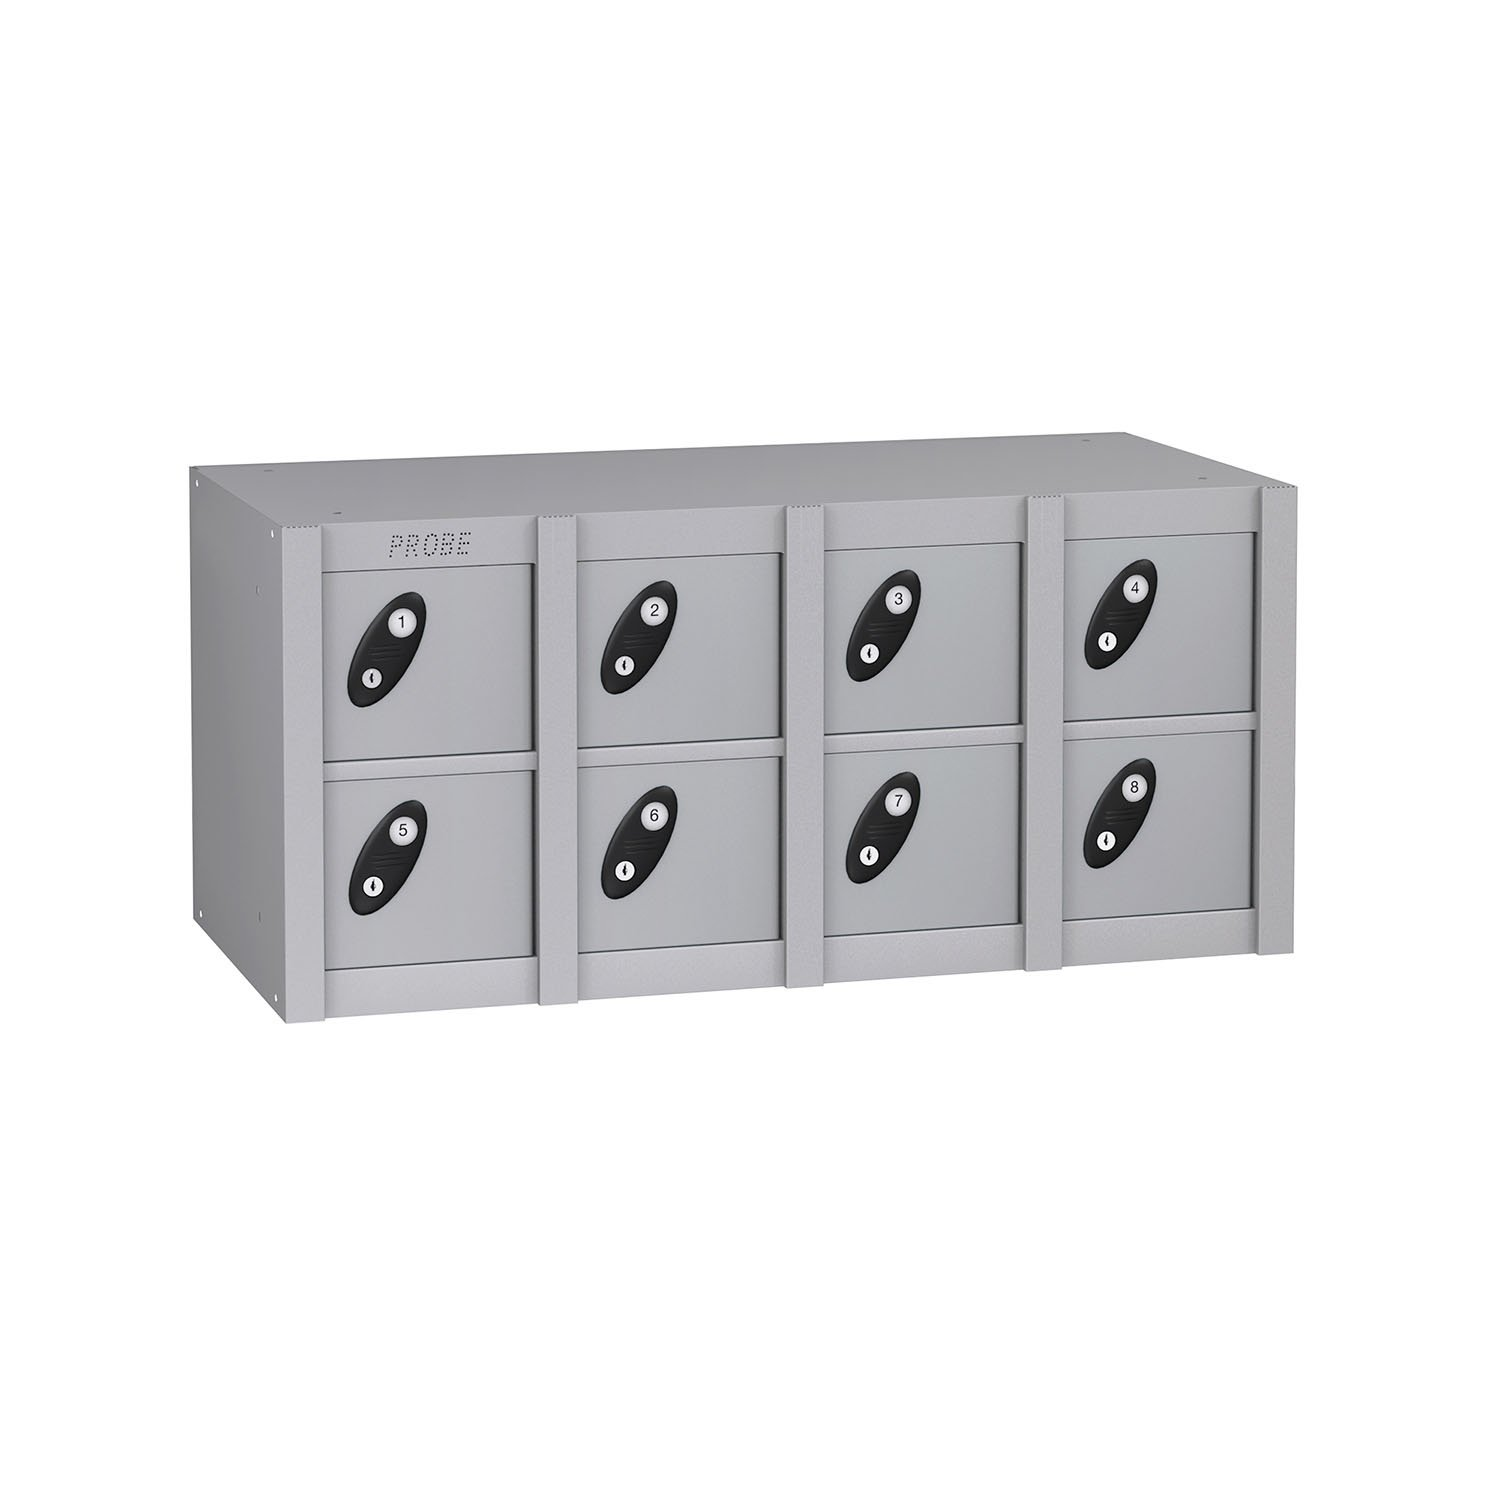 Probe 8 doors minibox lockers in sliver colour